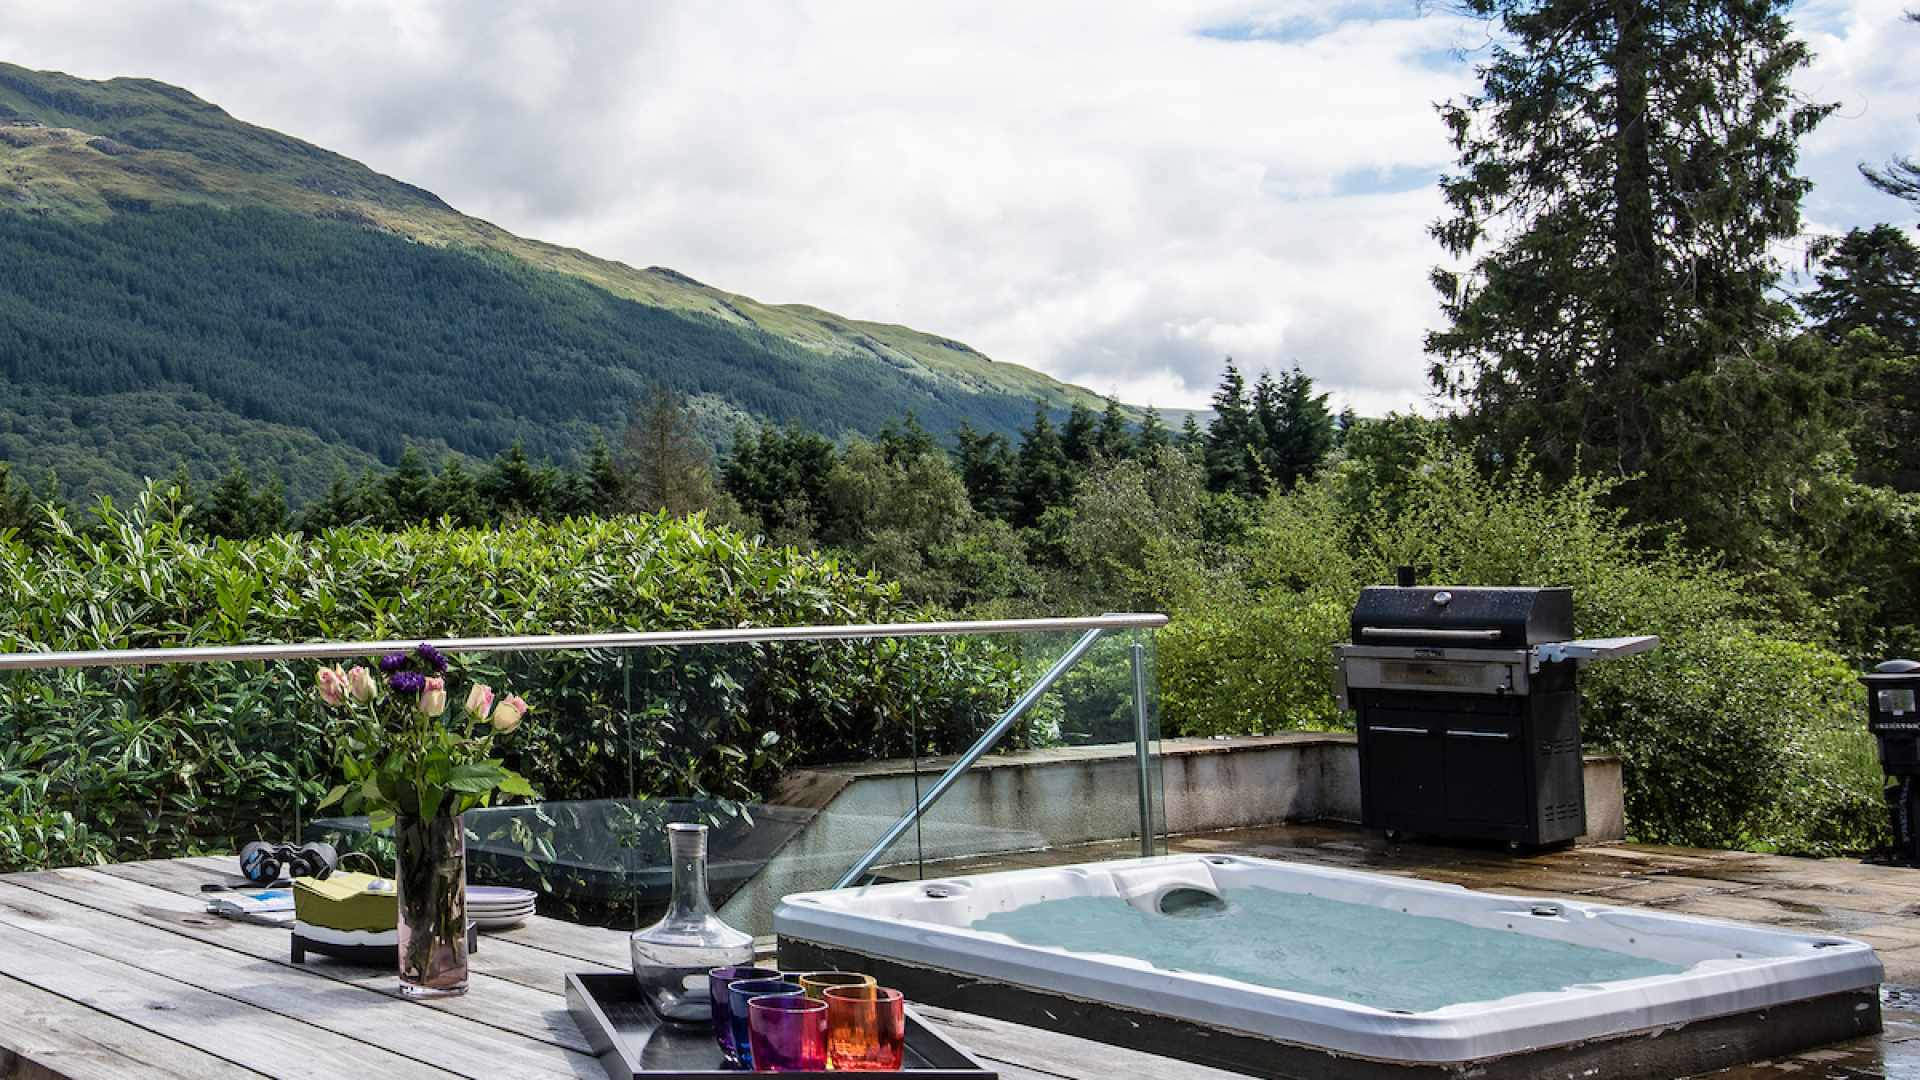 This hot tub is surrounded by stunning Scottish scenery overlooking Loch Lomond